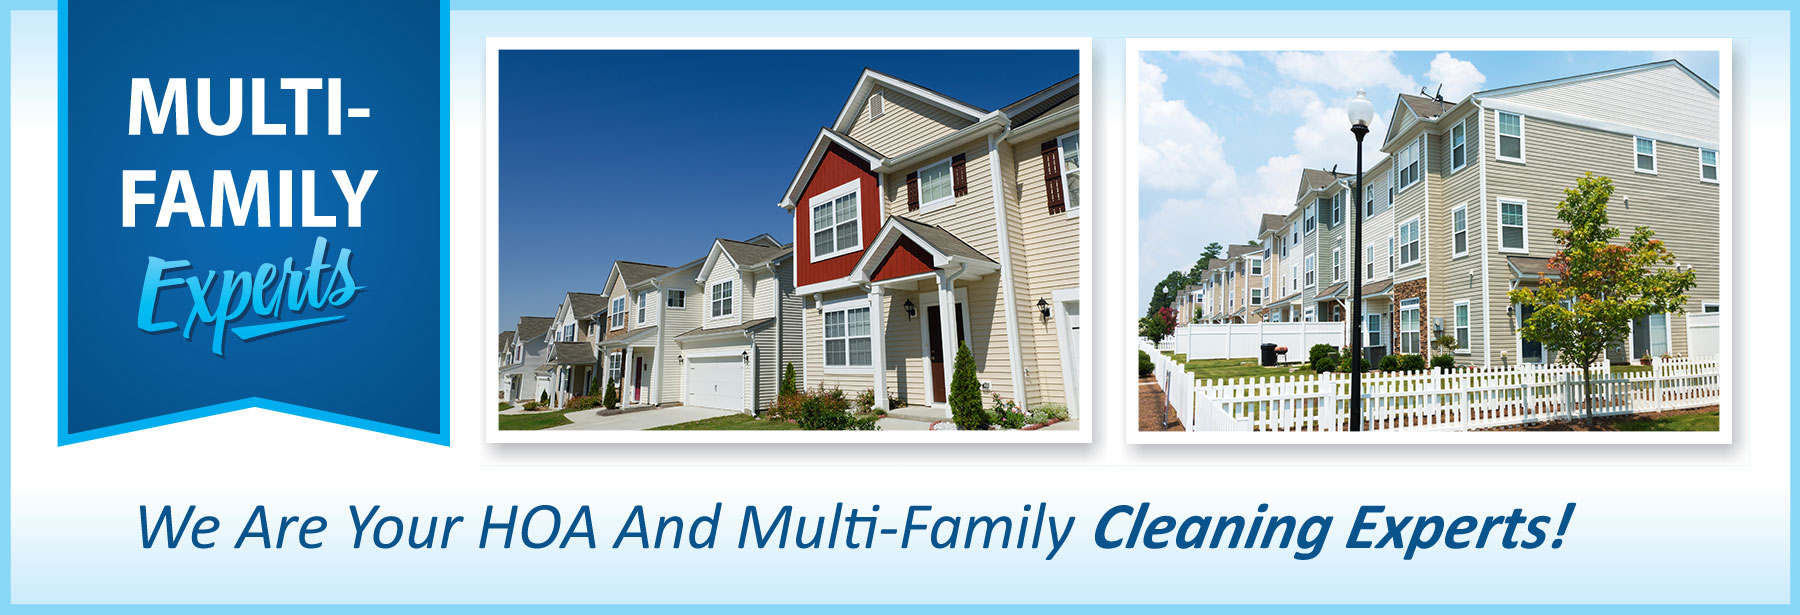 hoa property cleaning multifamily cleaning